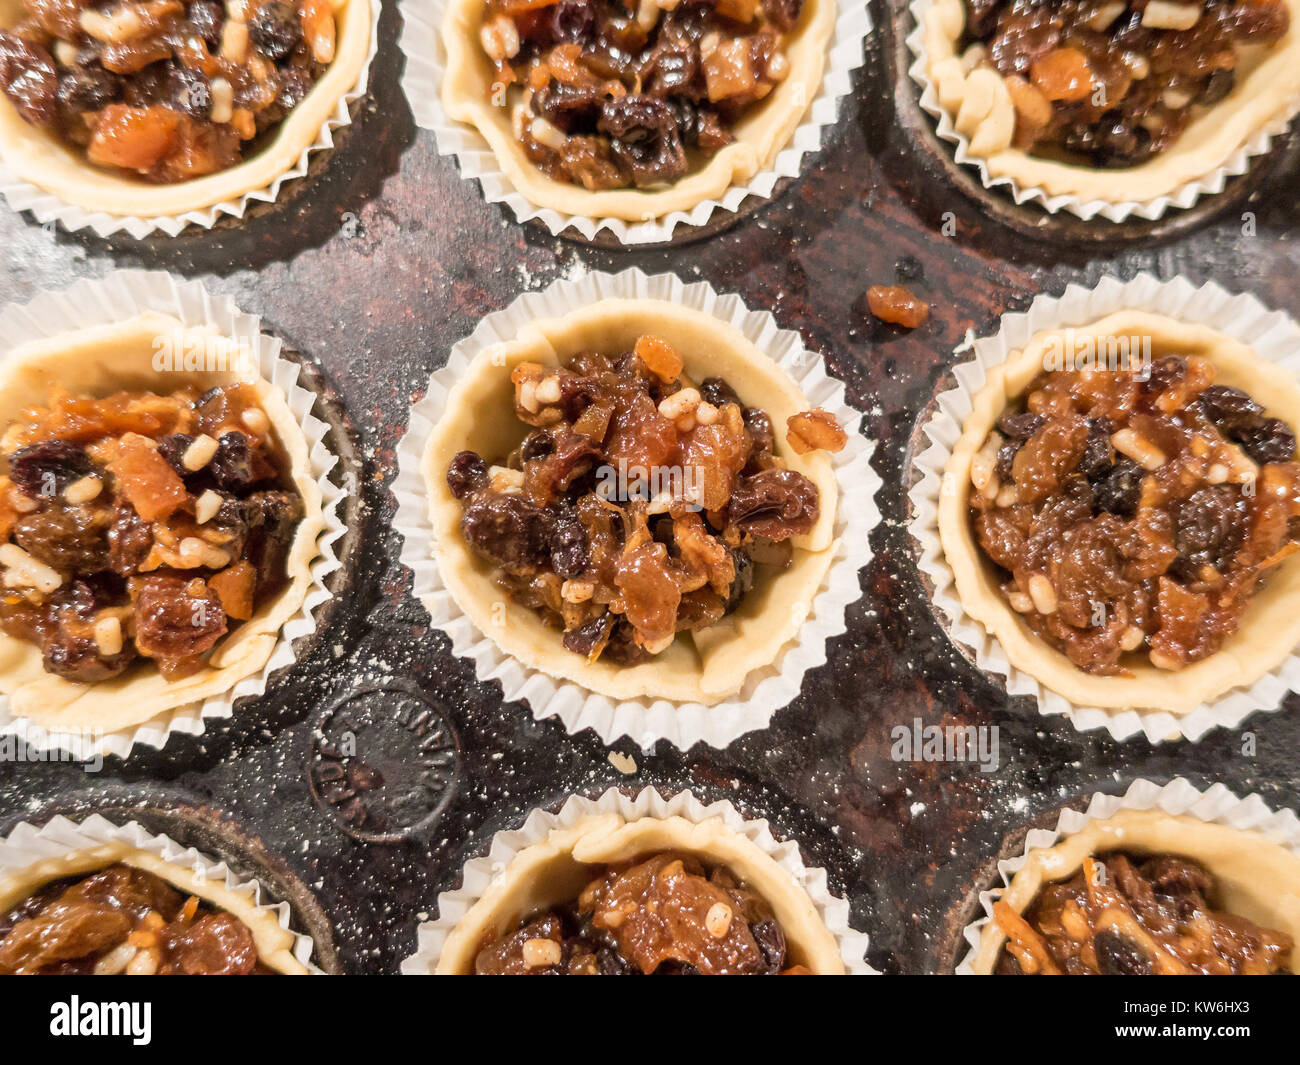 making-mince-pies-mince-pies-in-a-baking-tray-circles-of-pasty-have-KW6HX3.jpg